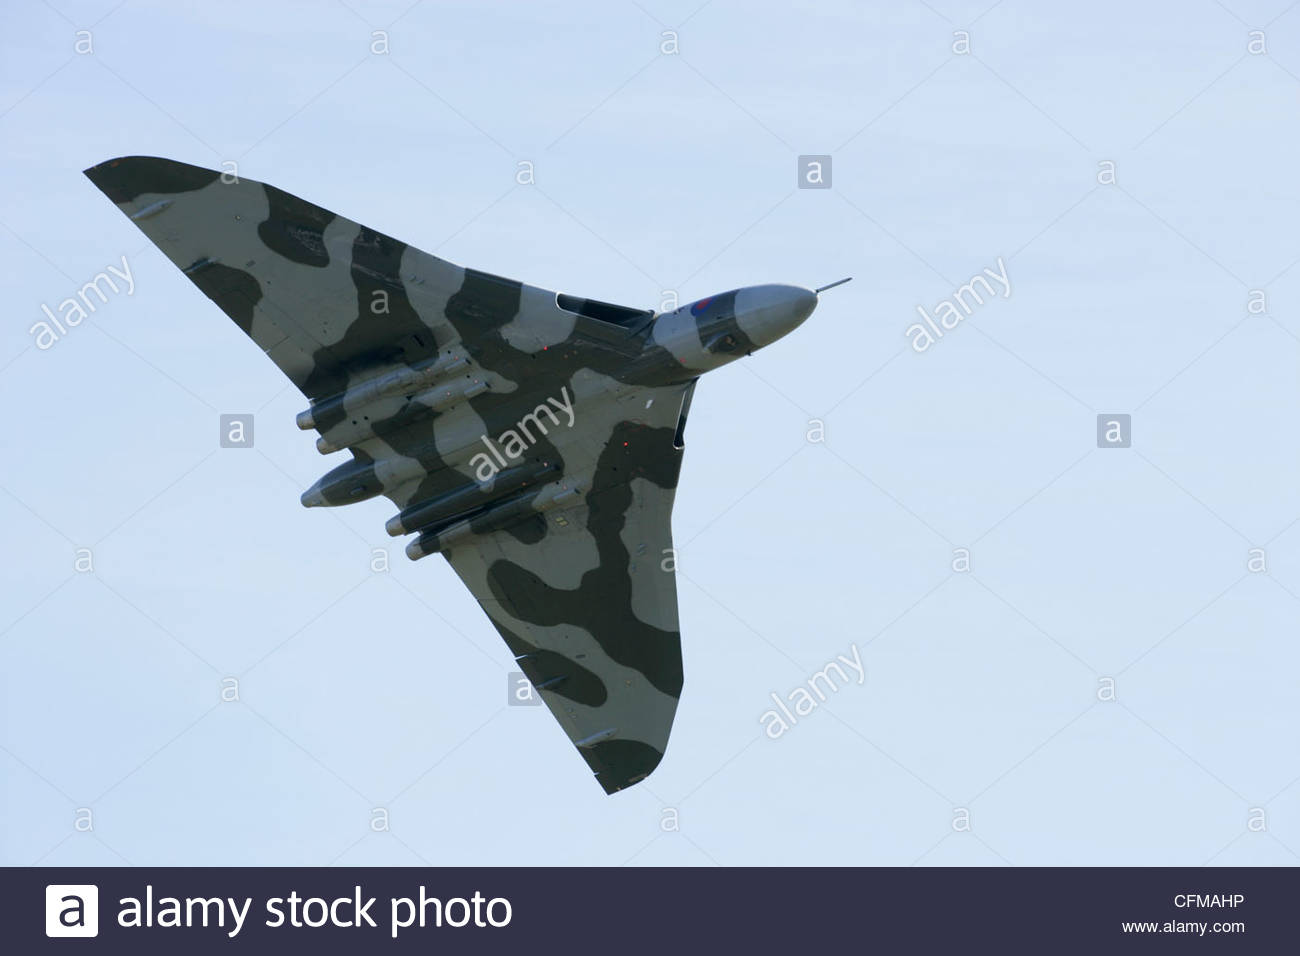 Vulcan bomber used by the RAF with a nuclear bomb payload capacity Out of service and now used for demonstrations - Stock Image